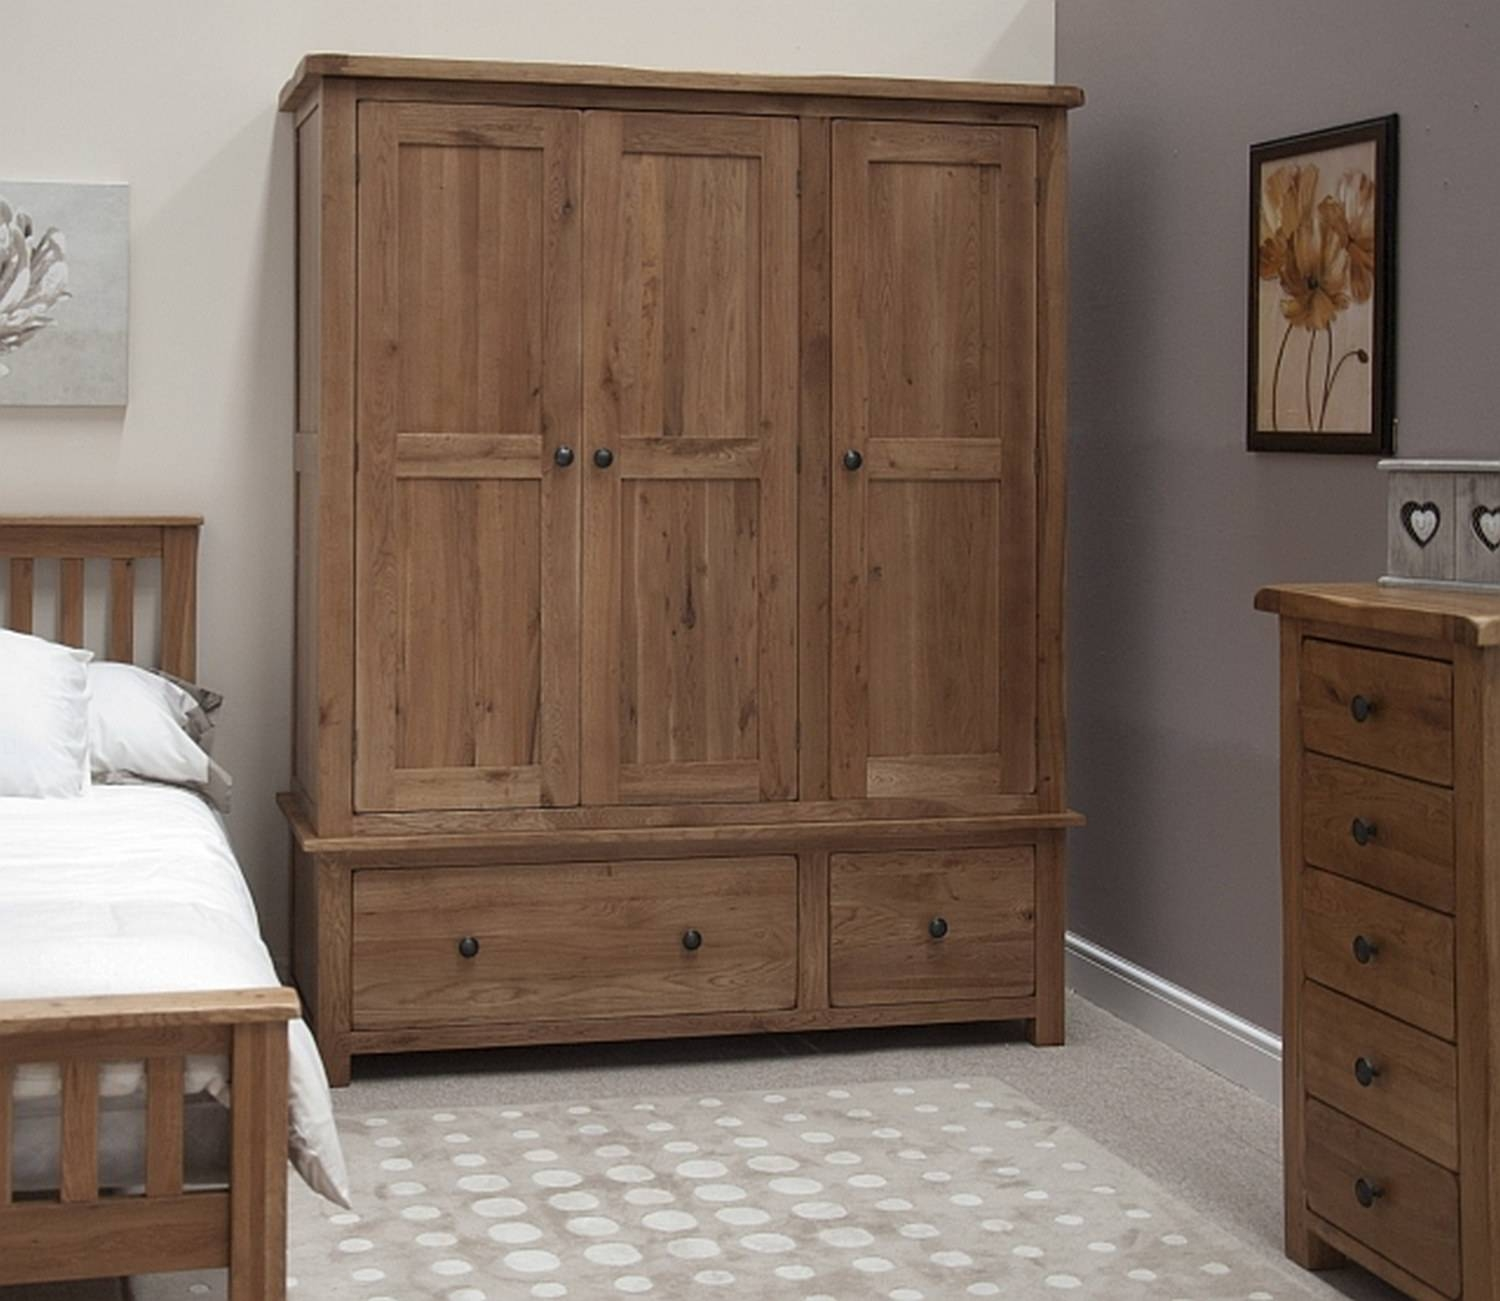 Reclaimed Wood Bedroom Sets Furniture Old Pine Cupboards Solid within Cheap Wood Wardrobes (Image 11 of 15)